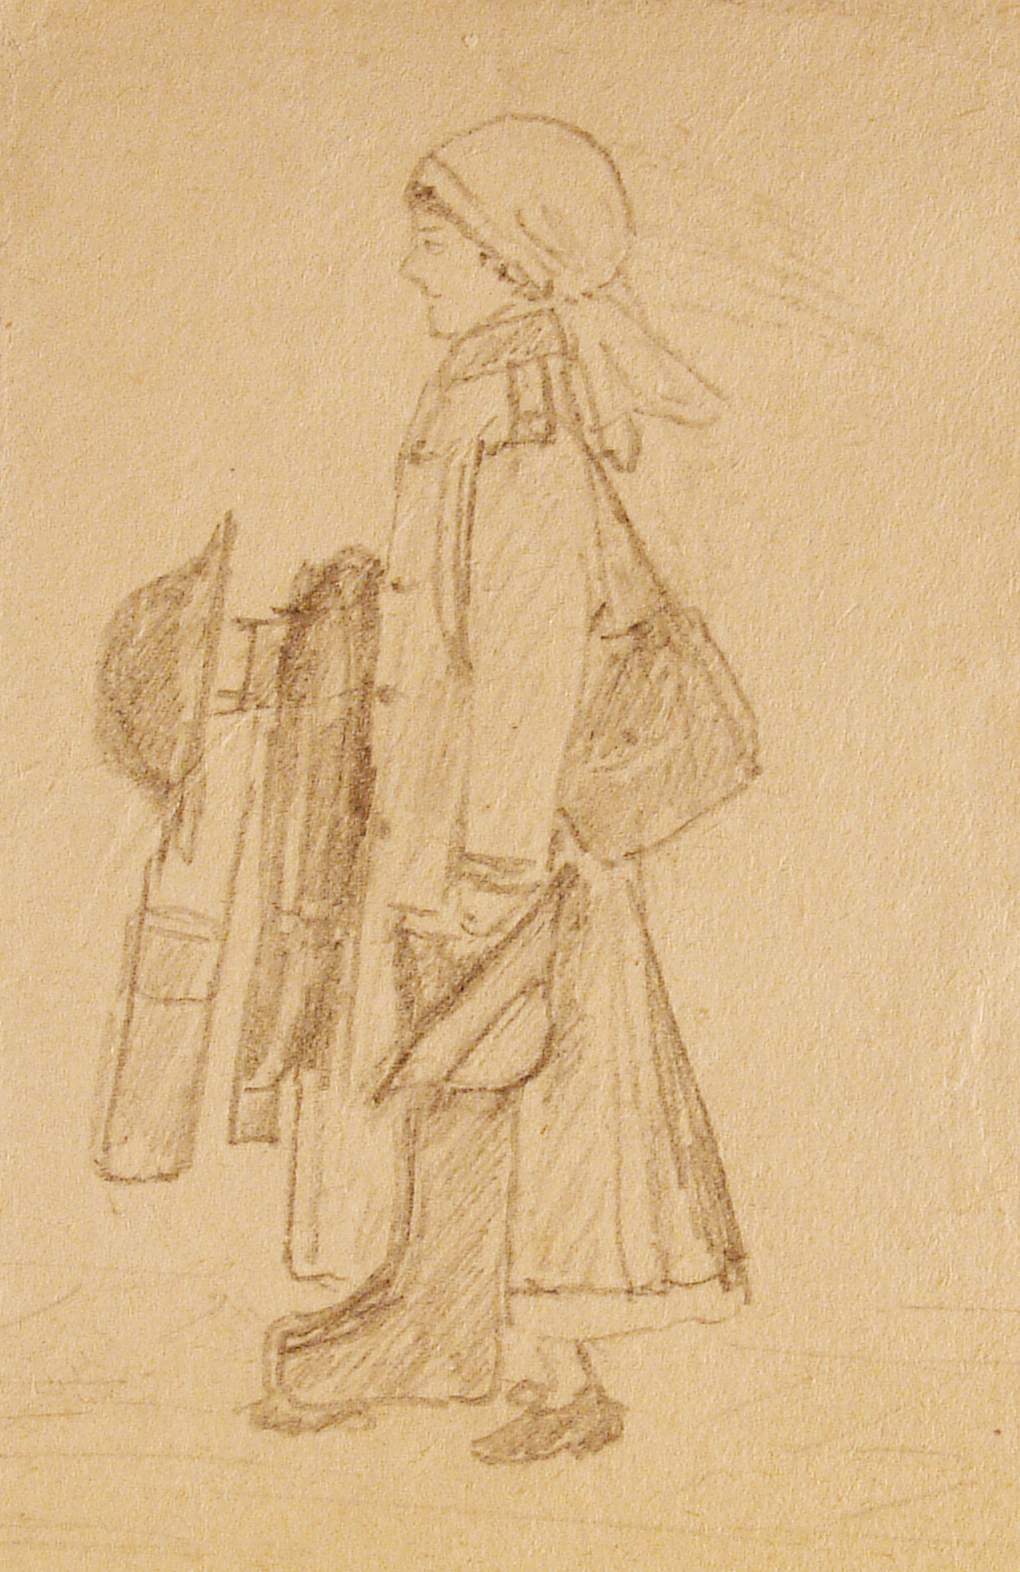 Rachel Eveline Wilson papers and our new exhibition: an insight into ...